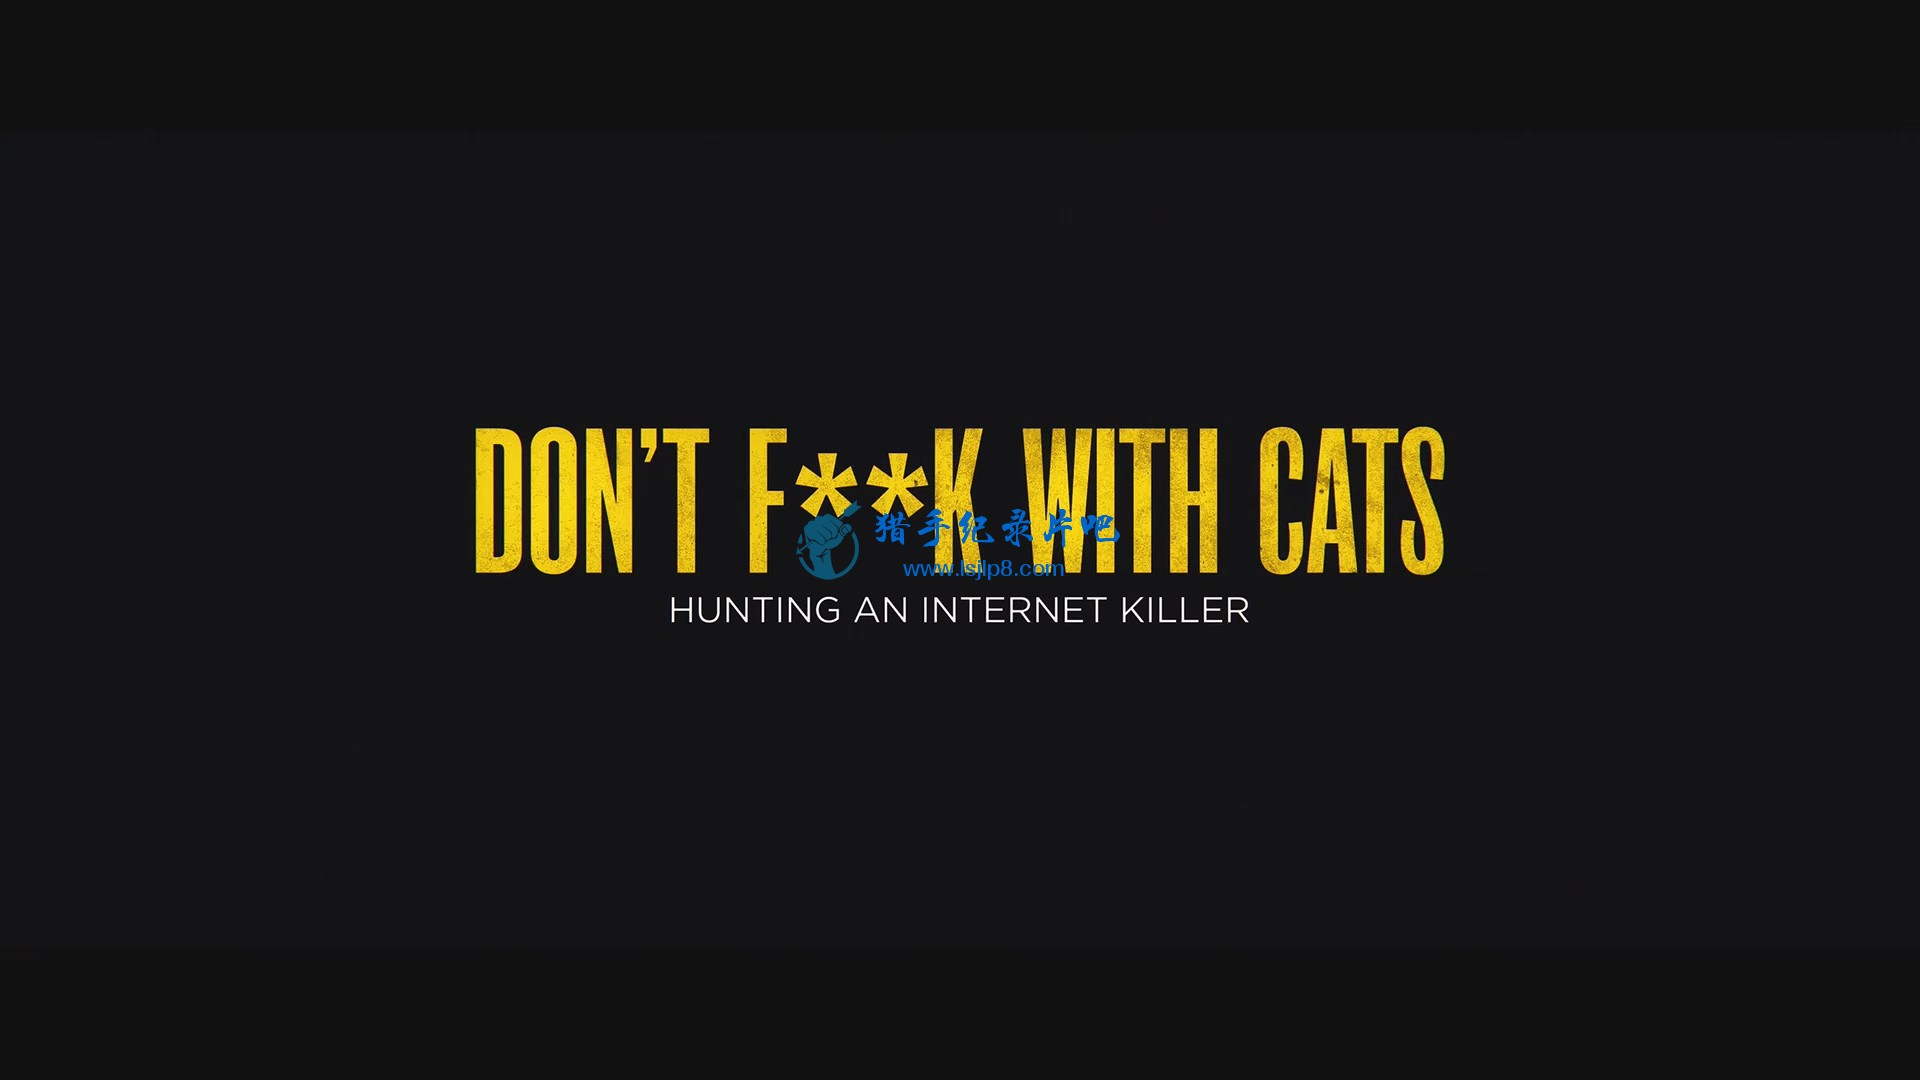 猫不可杀不可辱.网络杀手大搜捕.Dont.Fxxk.with.Cats.Hunting.an.Internet.Killer.S01.jpg